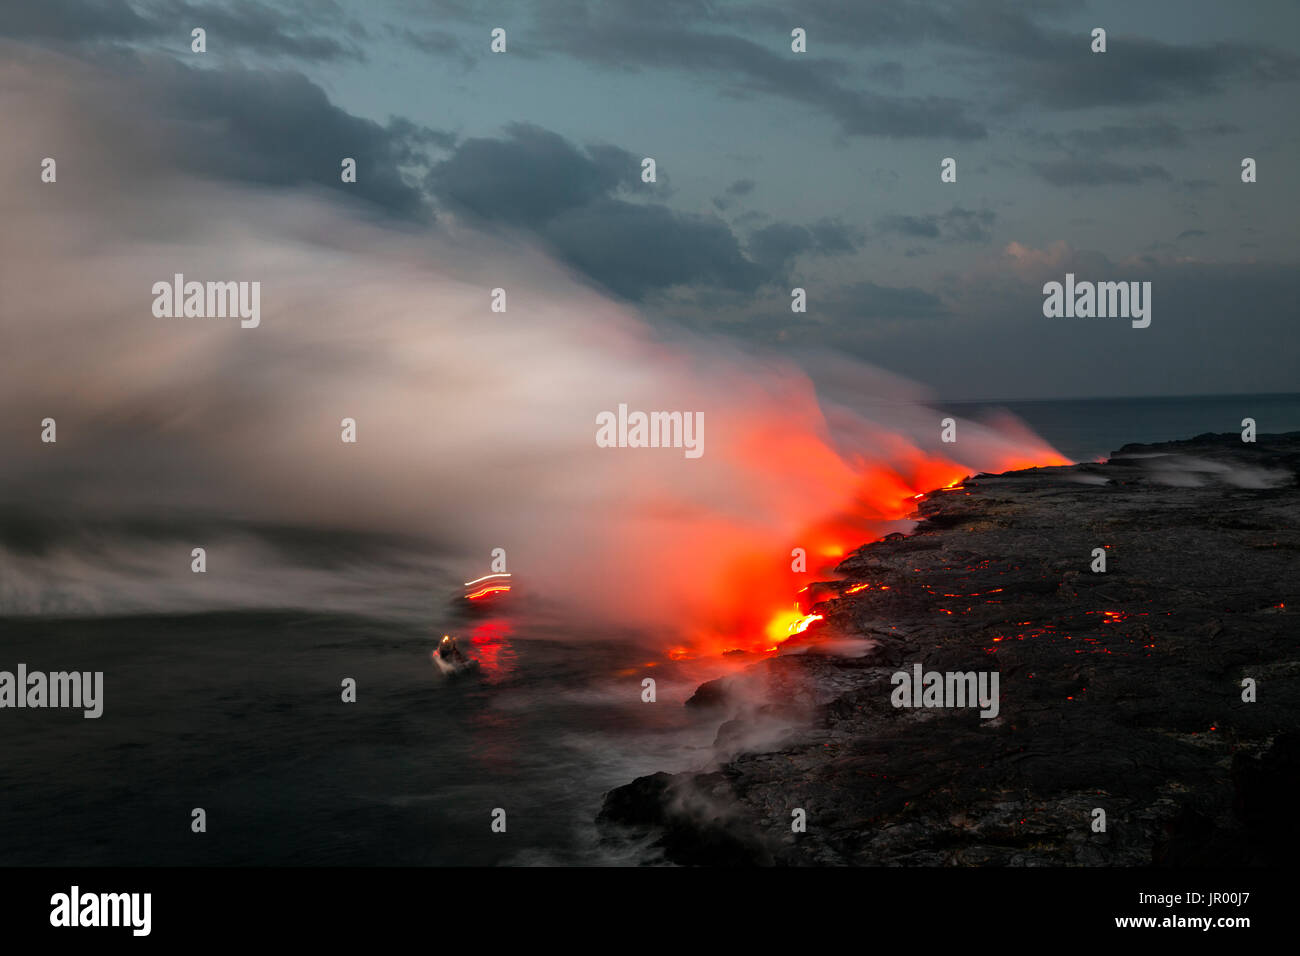 HI00335-00...HAWAI'I - Lava flowing into the Pacific Ocean from the East Riff Zoneof the Kilauea Volcano on the Island of Hawai'i. - Stock Image